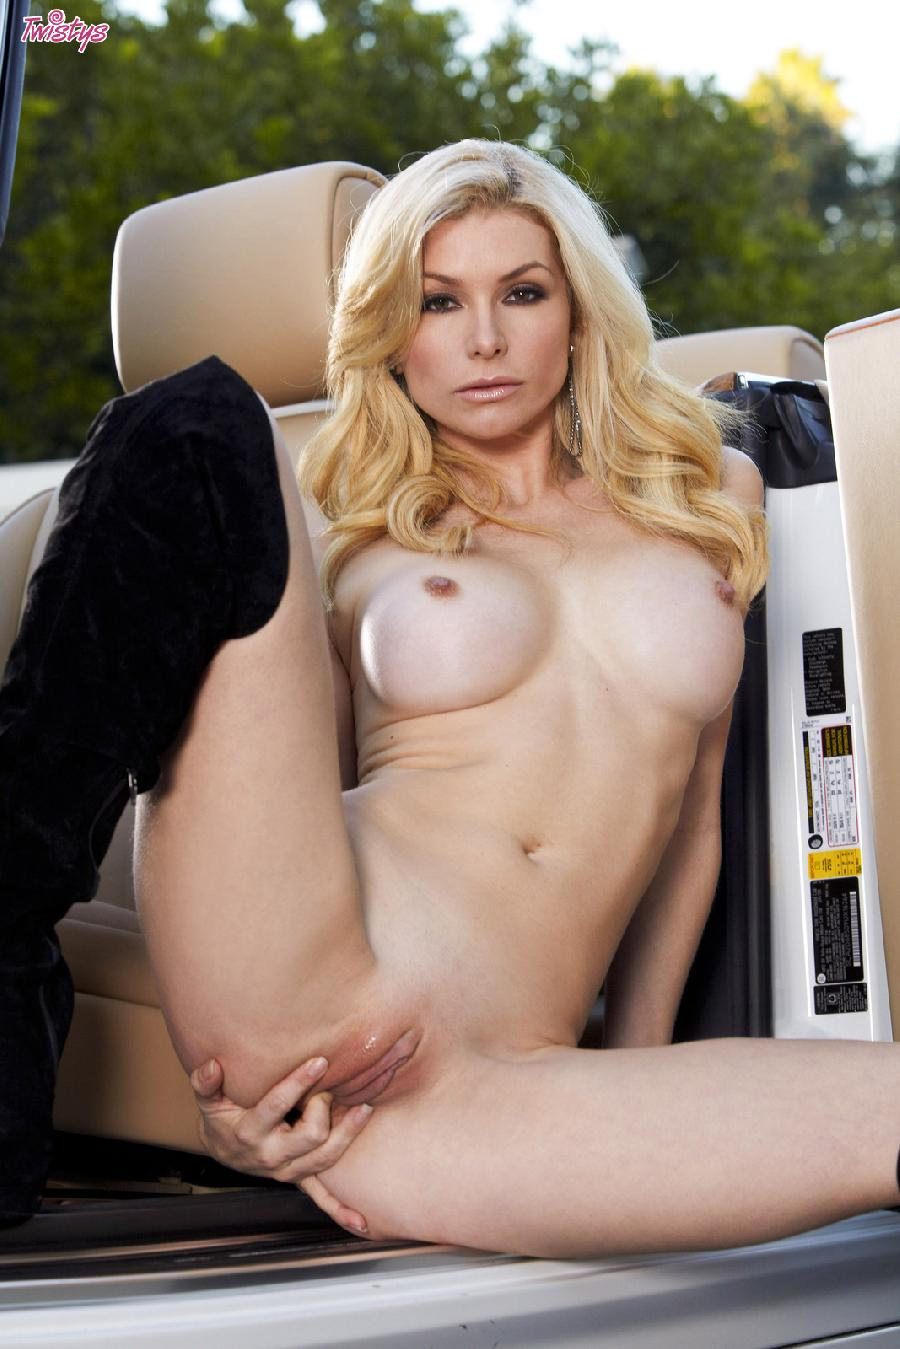 Heather Vandeven wanna catch a ride - 12